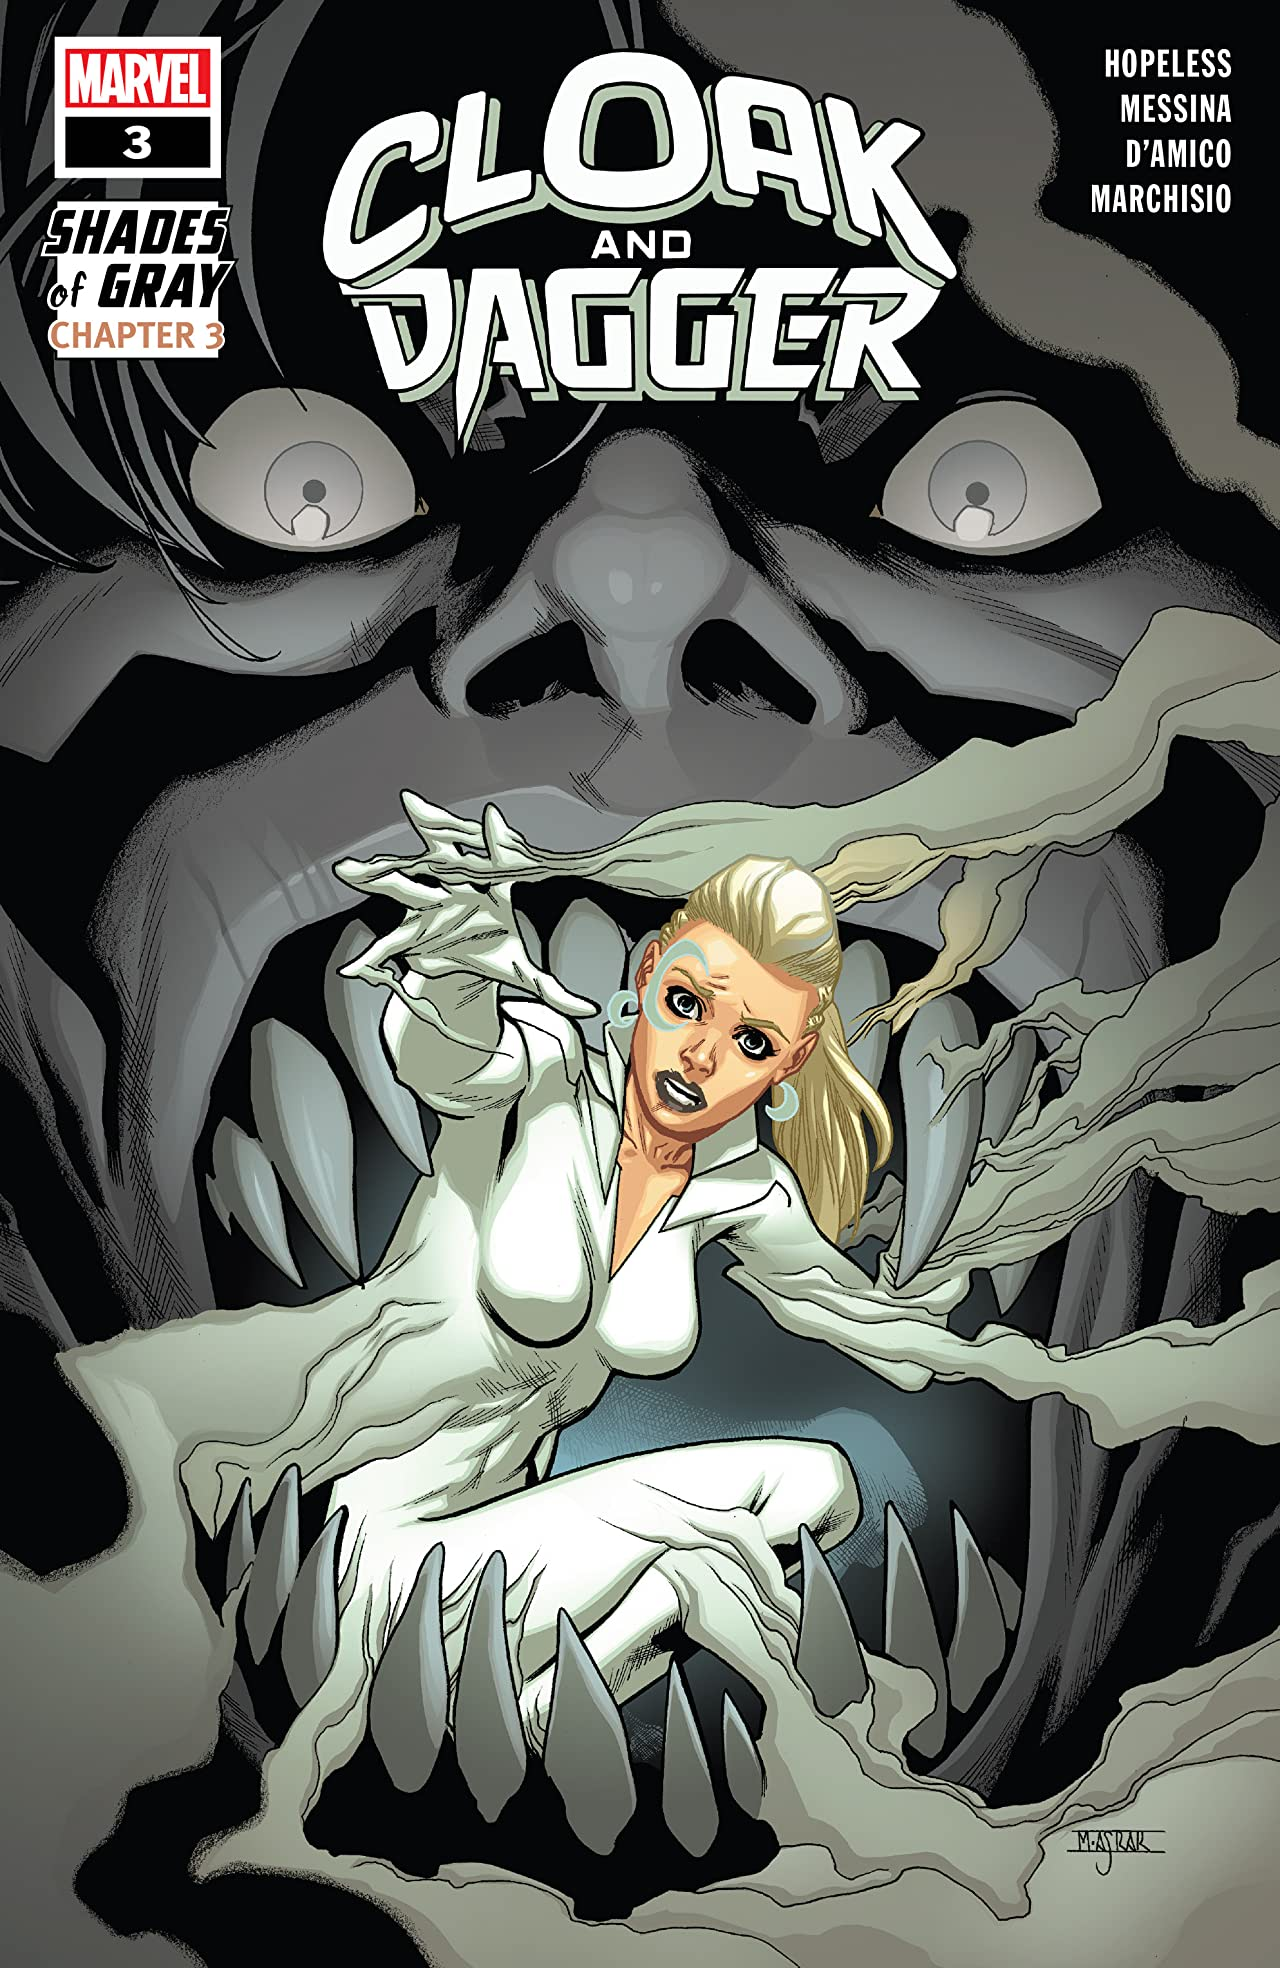 Cloak And Dagger (2018) #3 (of 6)